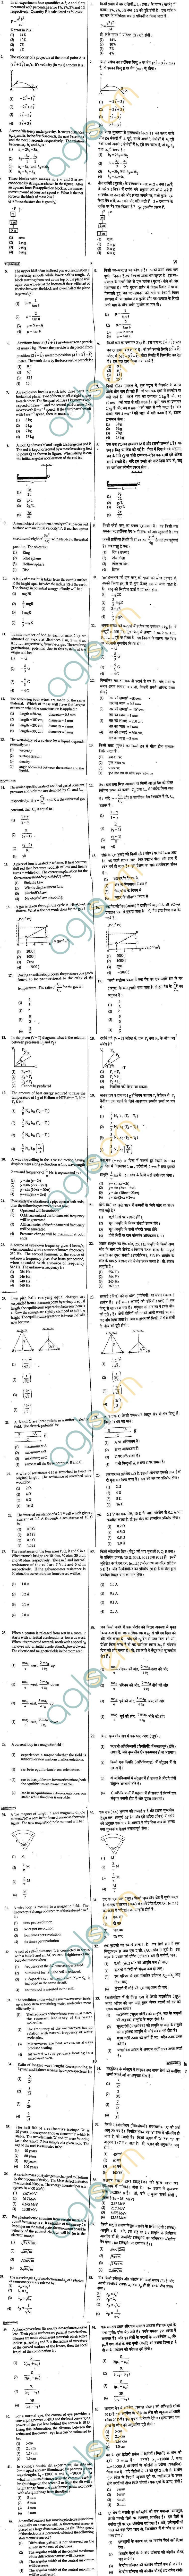 AIPMT 2014 Sample Question Papers 1 in aipmt  Category